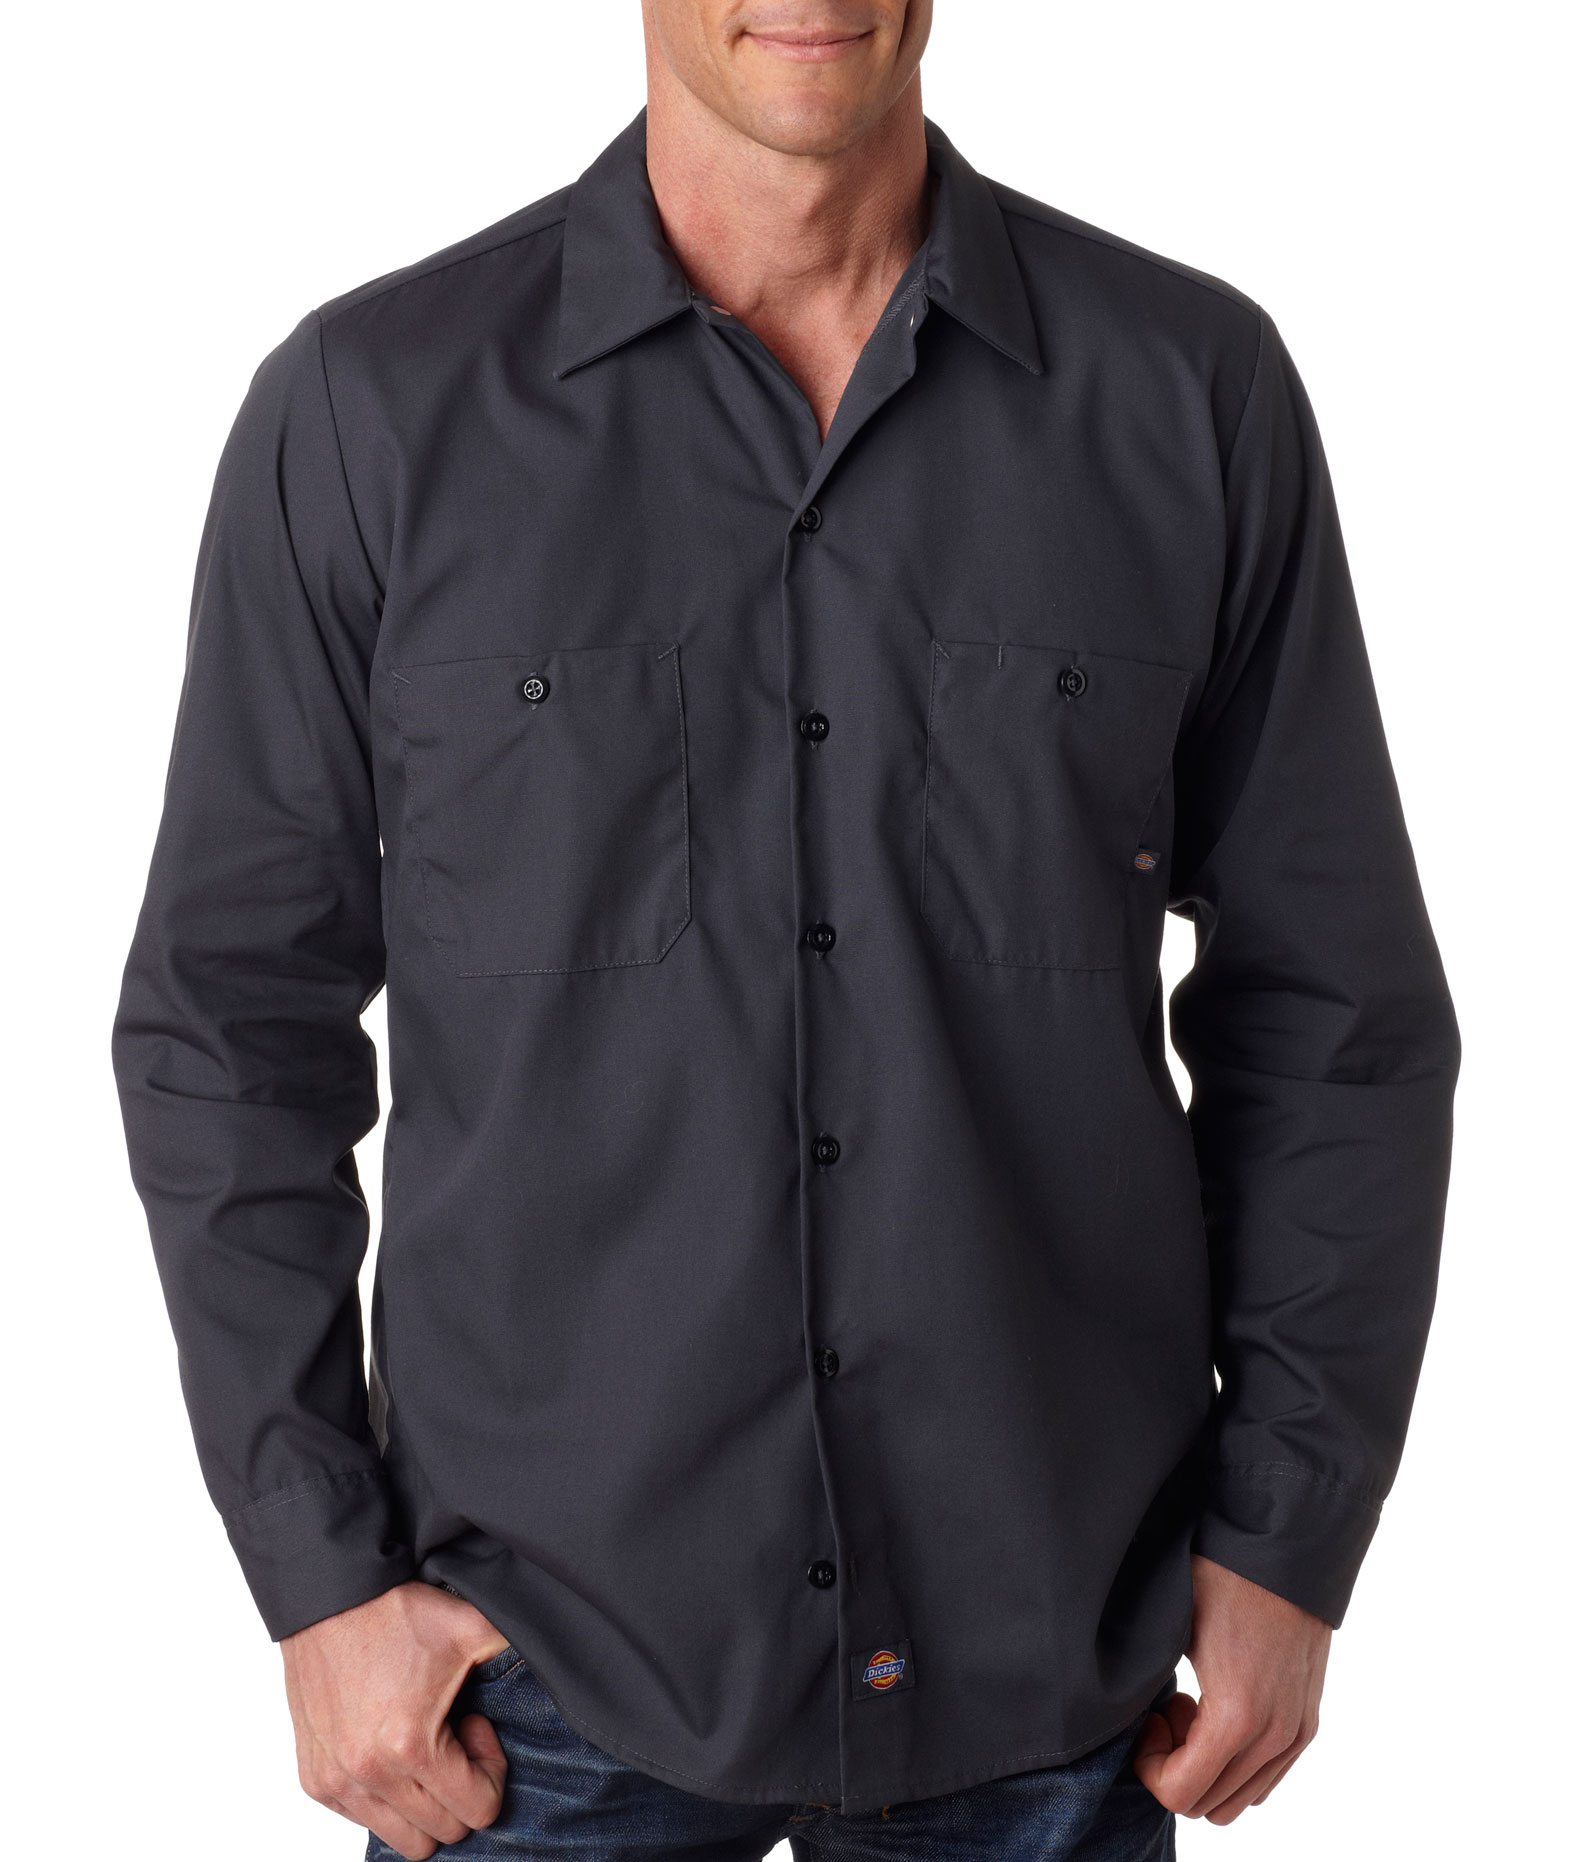 Dickies Mens Long-Sleeve Industrial Poplin Work Shirts